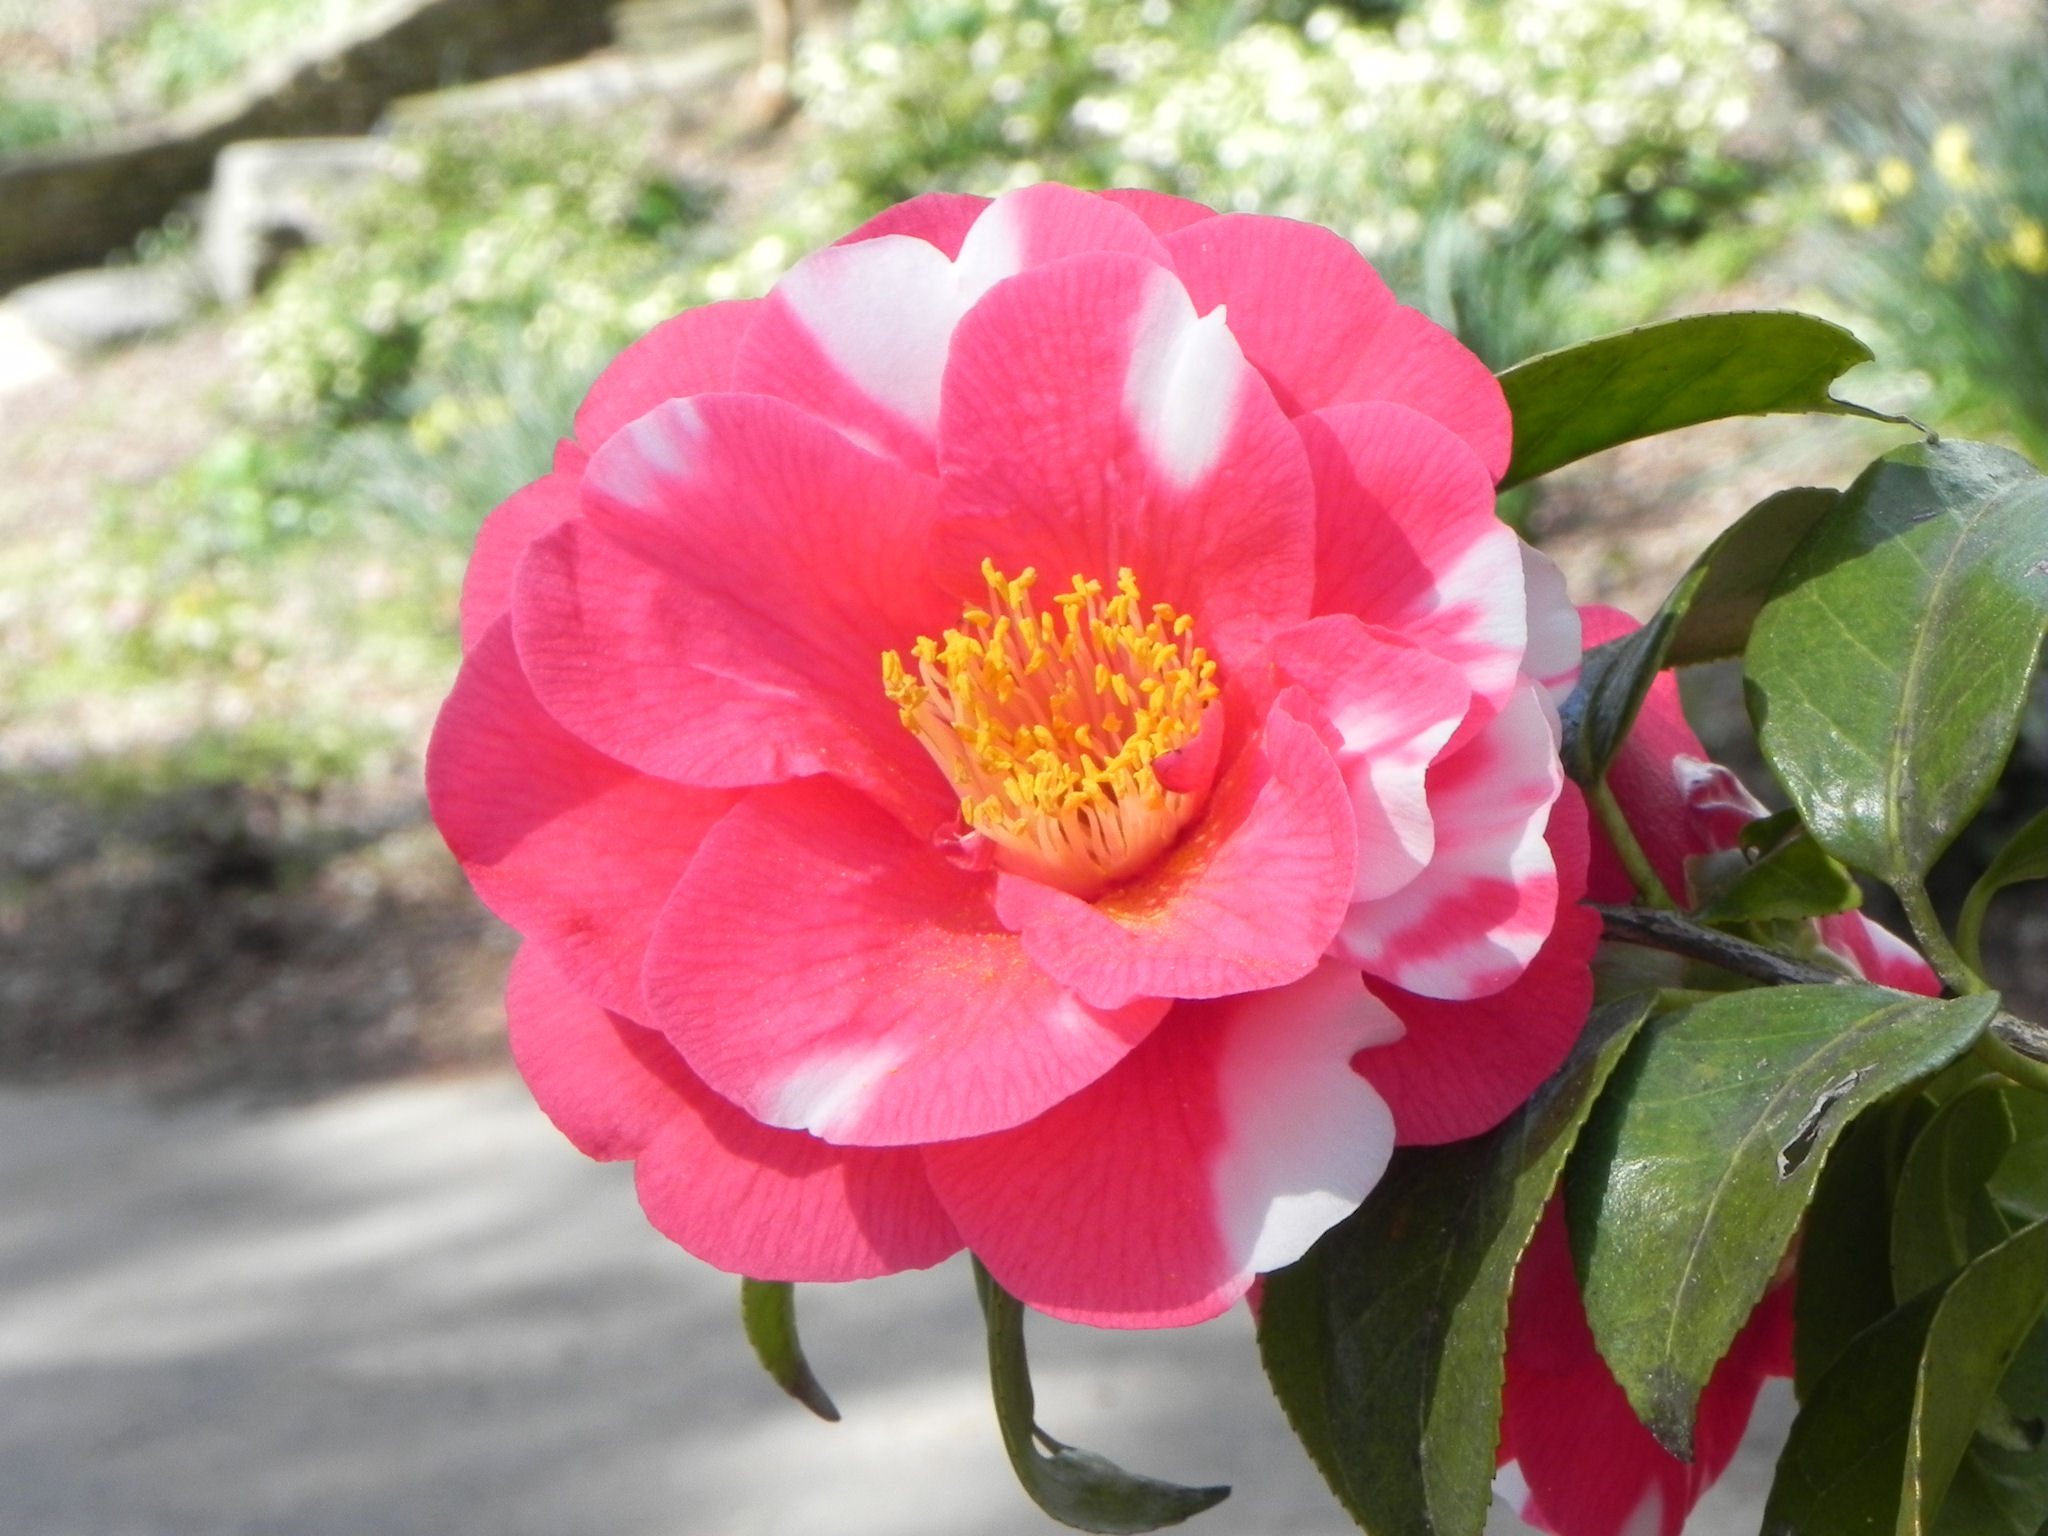 Japanese Camellia Tree with Flowers